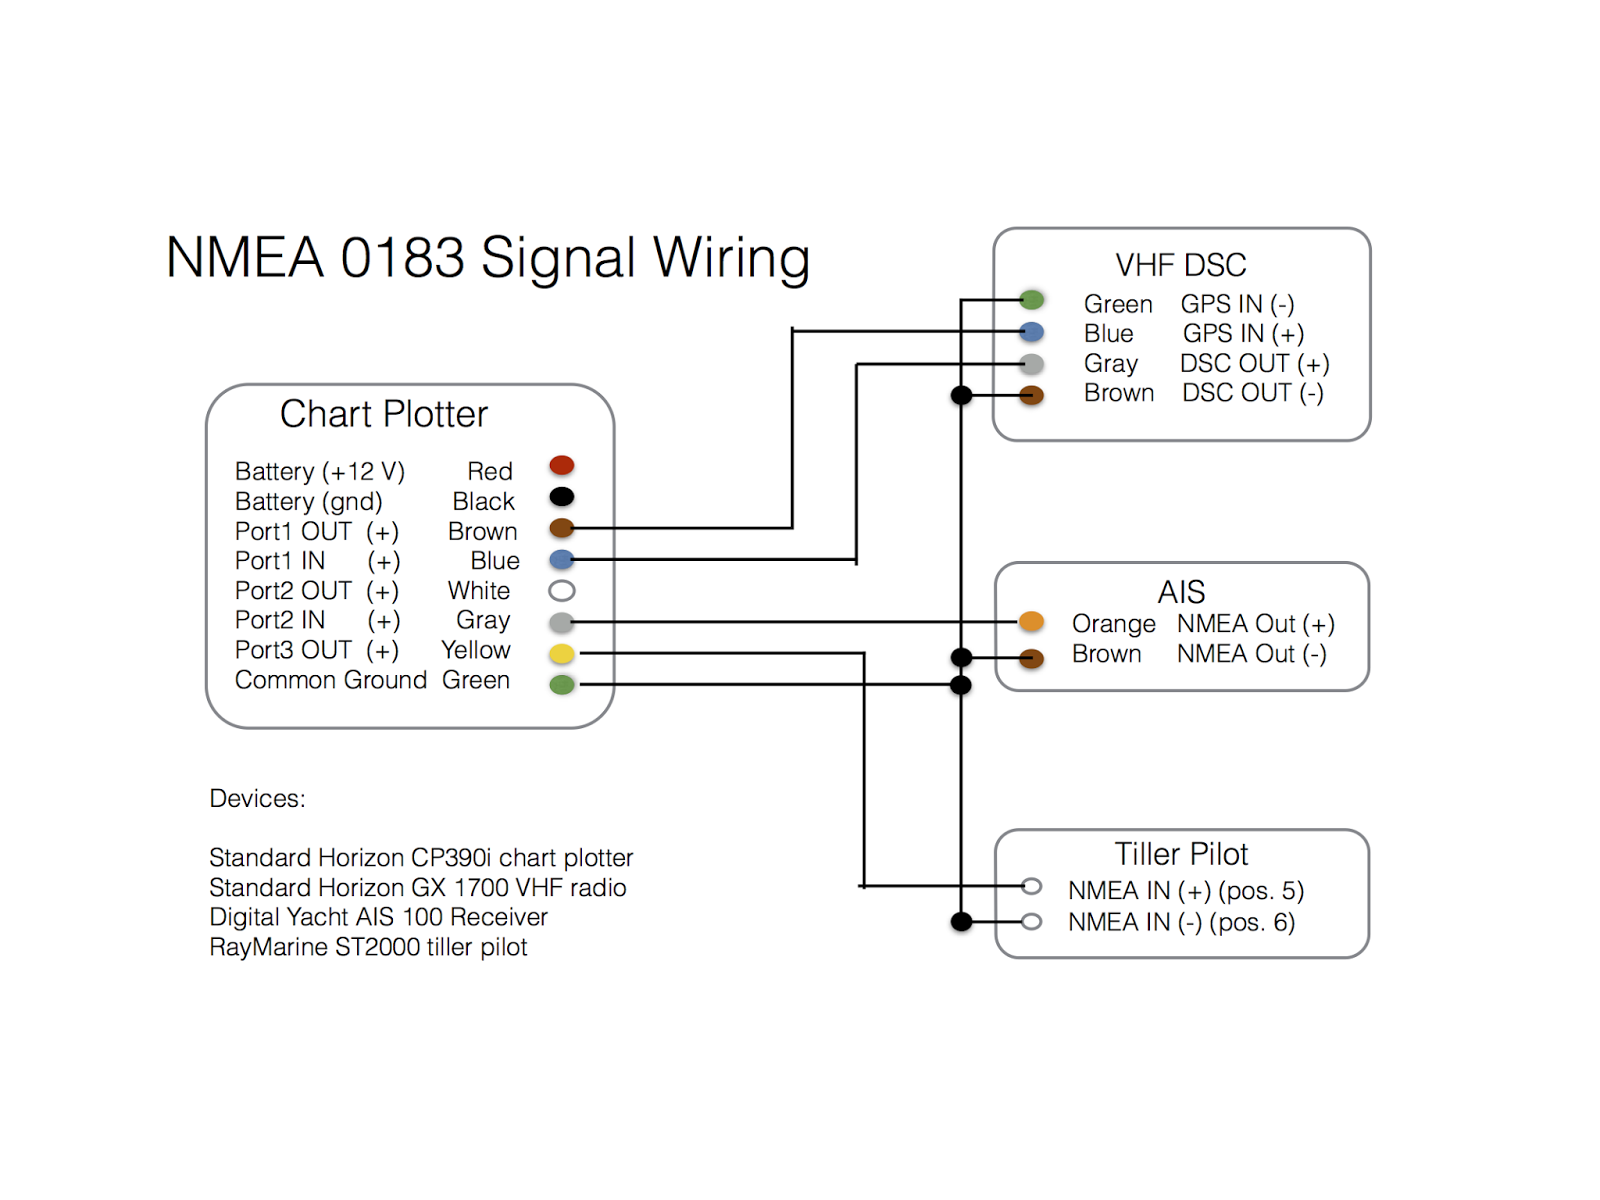 Nmea 0183 Wiring Diagram - Wiring Diagram Experts Garmin Wiring Diagram on atx connector diagram, garmin network cable wiring, garmin usb wiring, data mapping diagram, garmin speedometer, garmin 3010c wiring, garmin sensor,